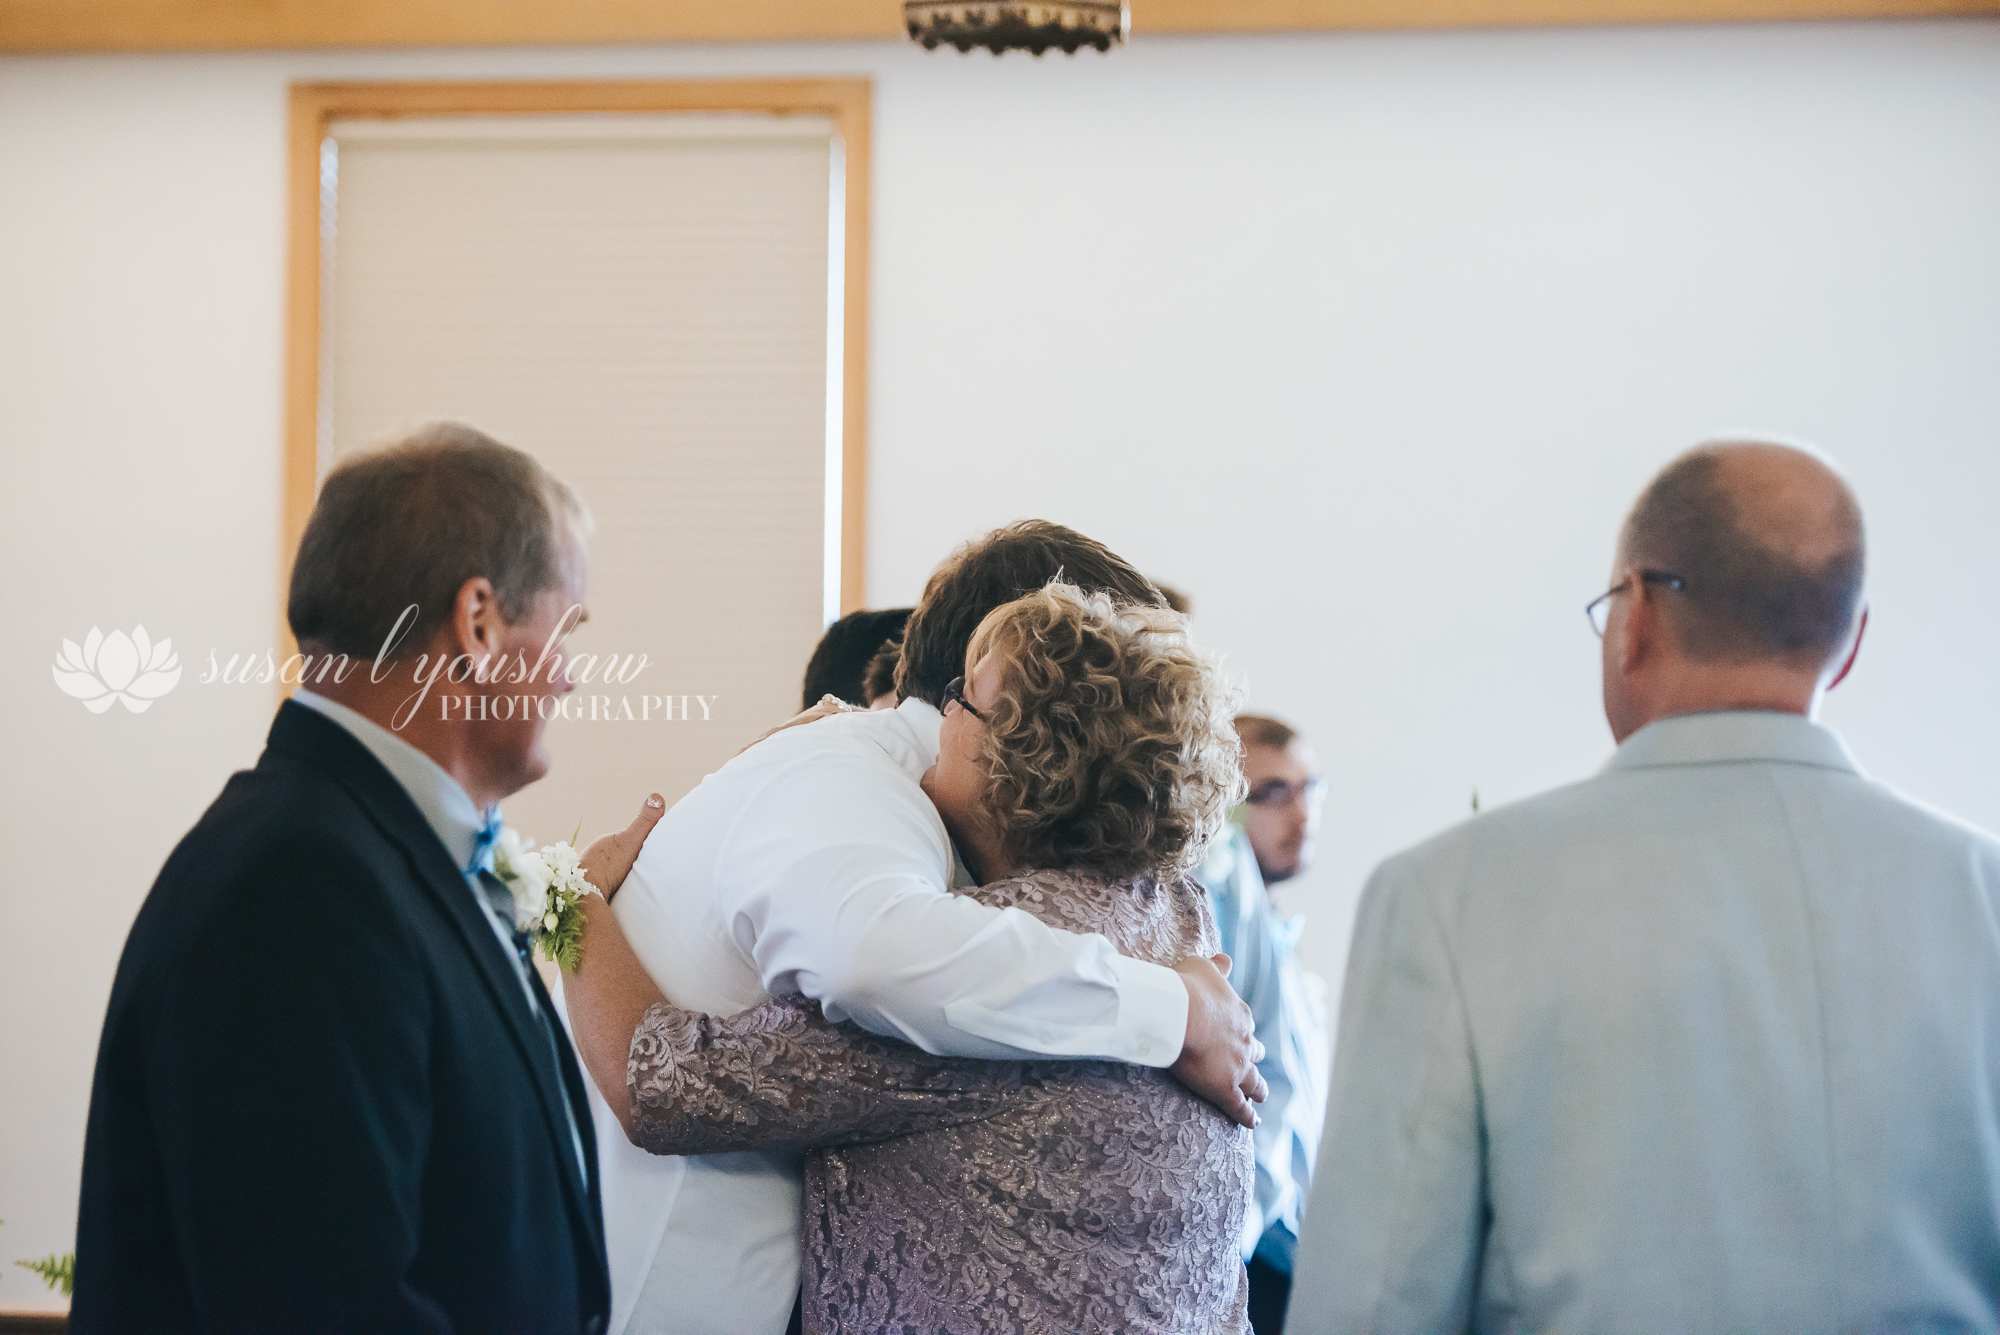 Katelyn and Wes Wedding Photos 07-13-2019 SLY Photography-47.jpg